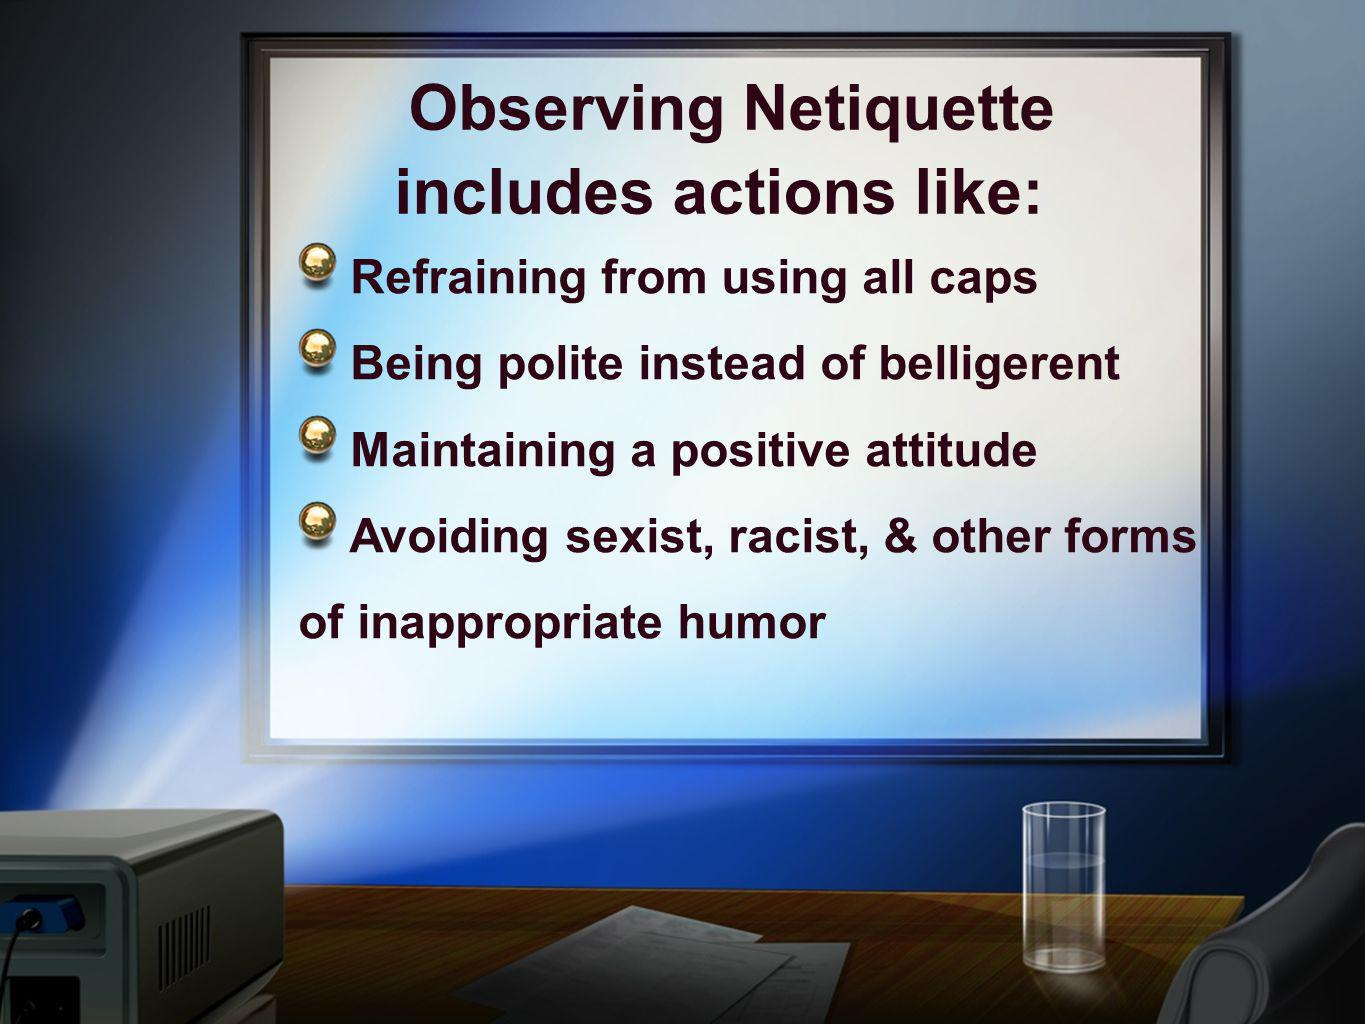 Observing Netiquette includes actions like: